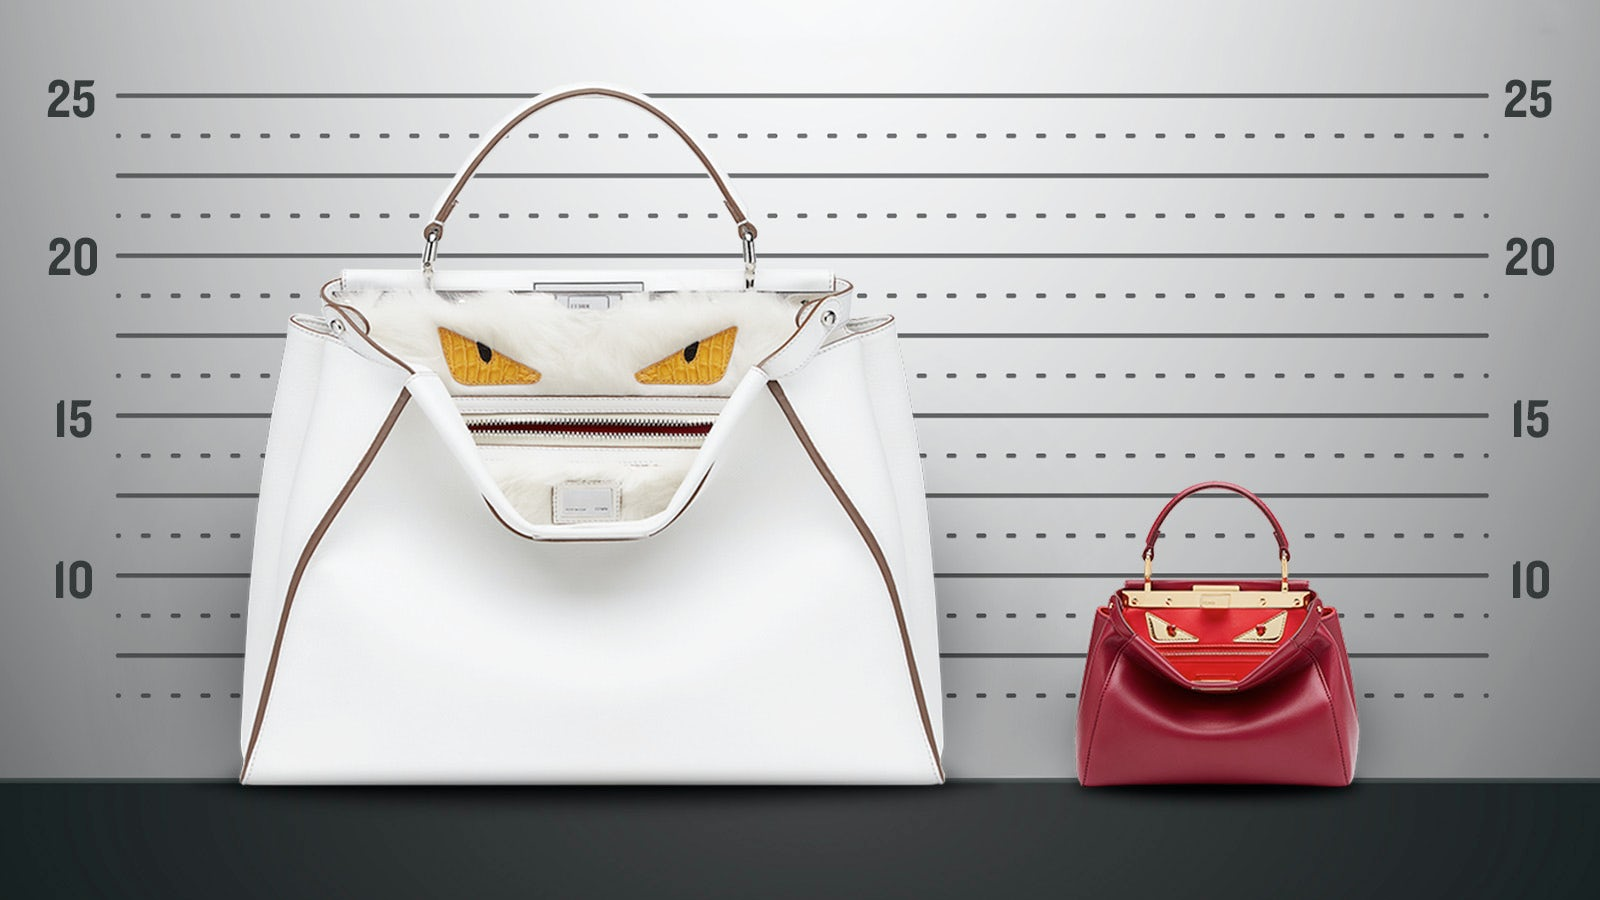 Fendi's Peekaboo handbag in 'large' and 'mini' | Photo: Paul Price for BoF